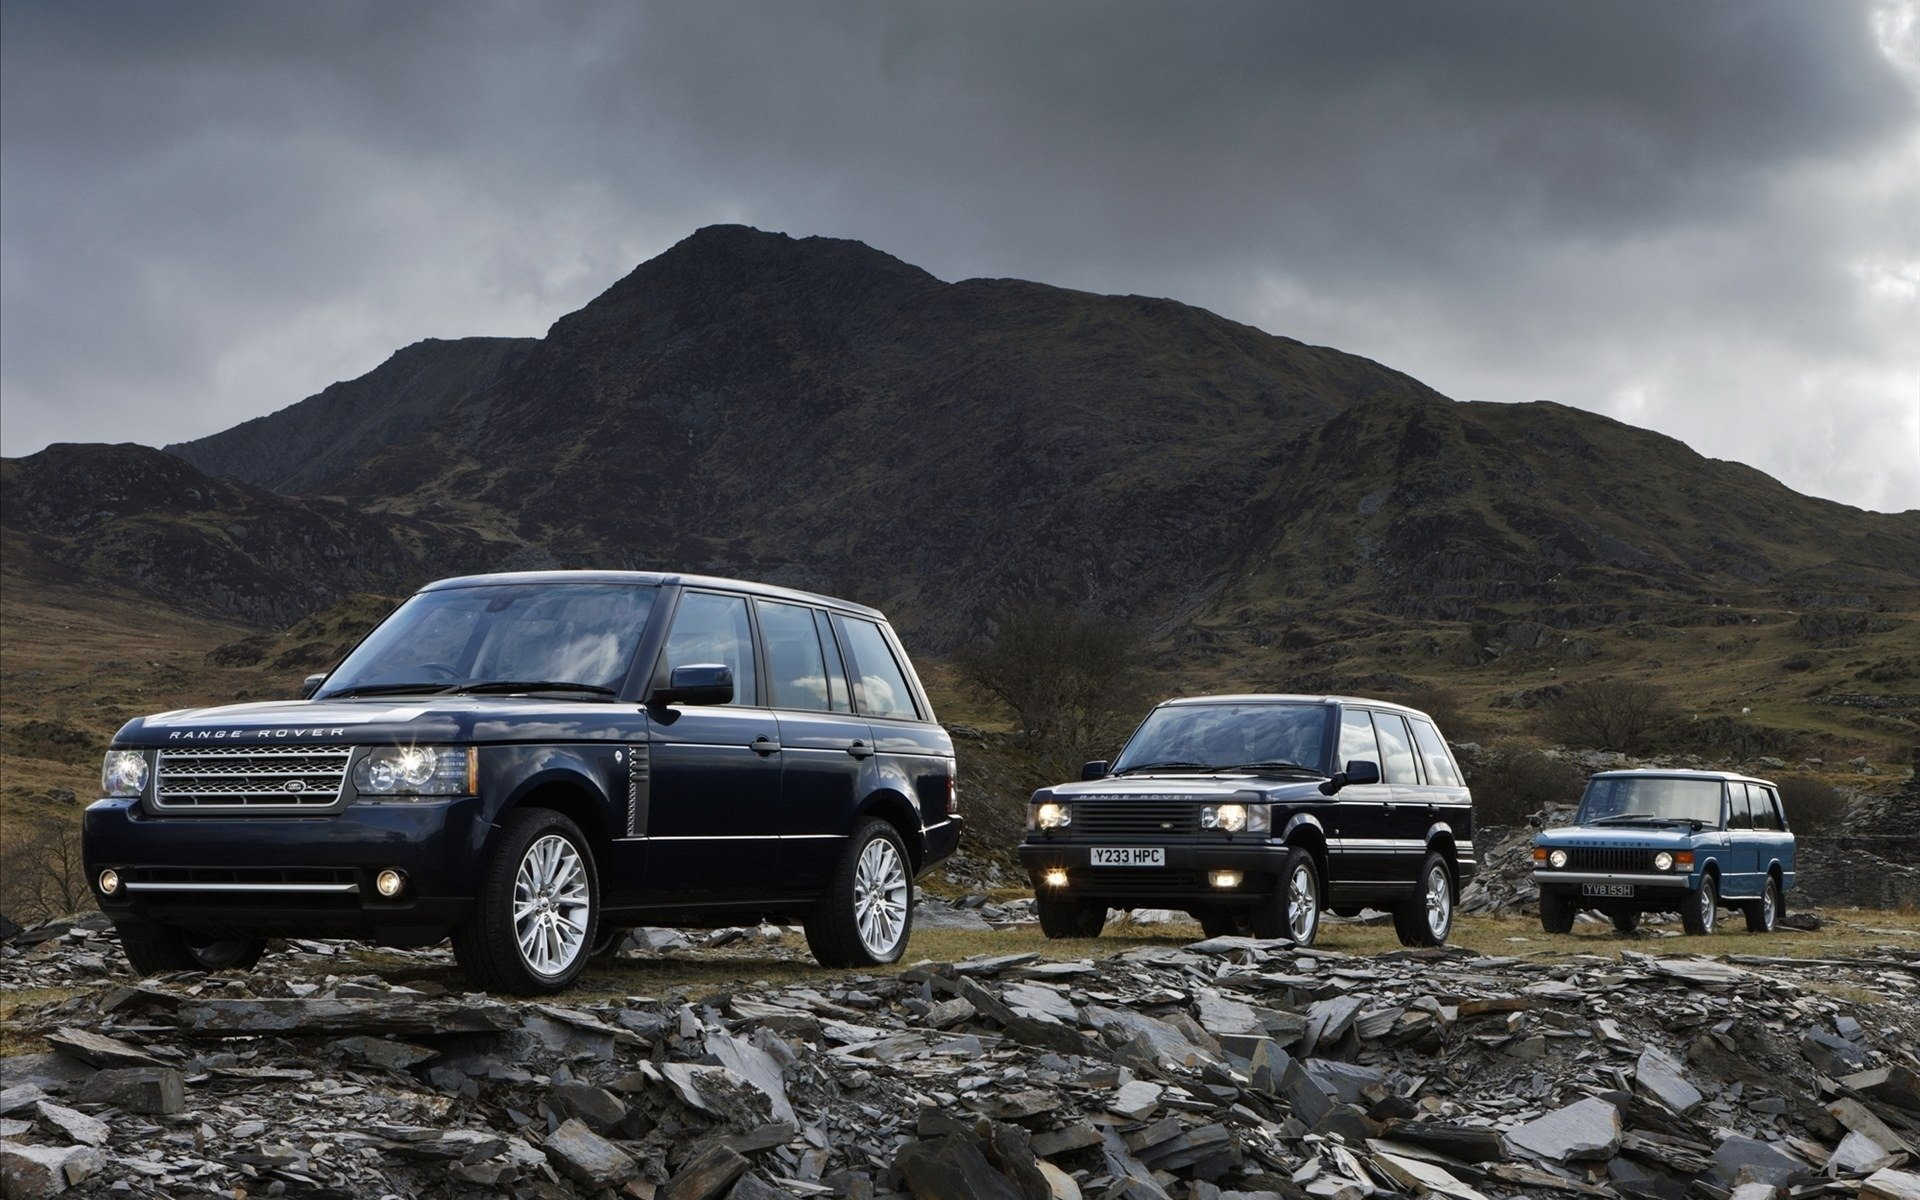 Range Rover Wallpaper Hd: Range Rover Full HD Wallpaper And Background Image